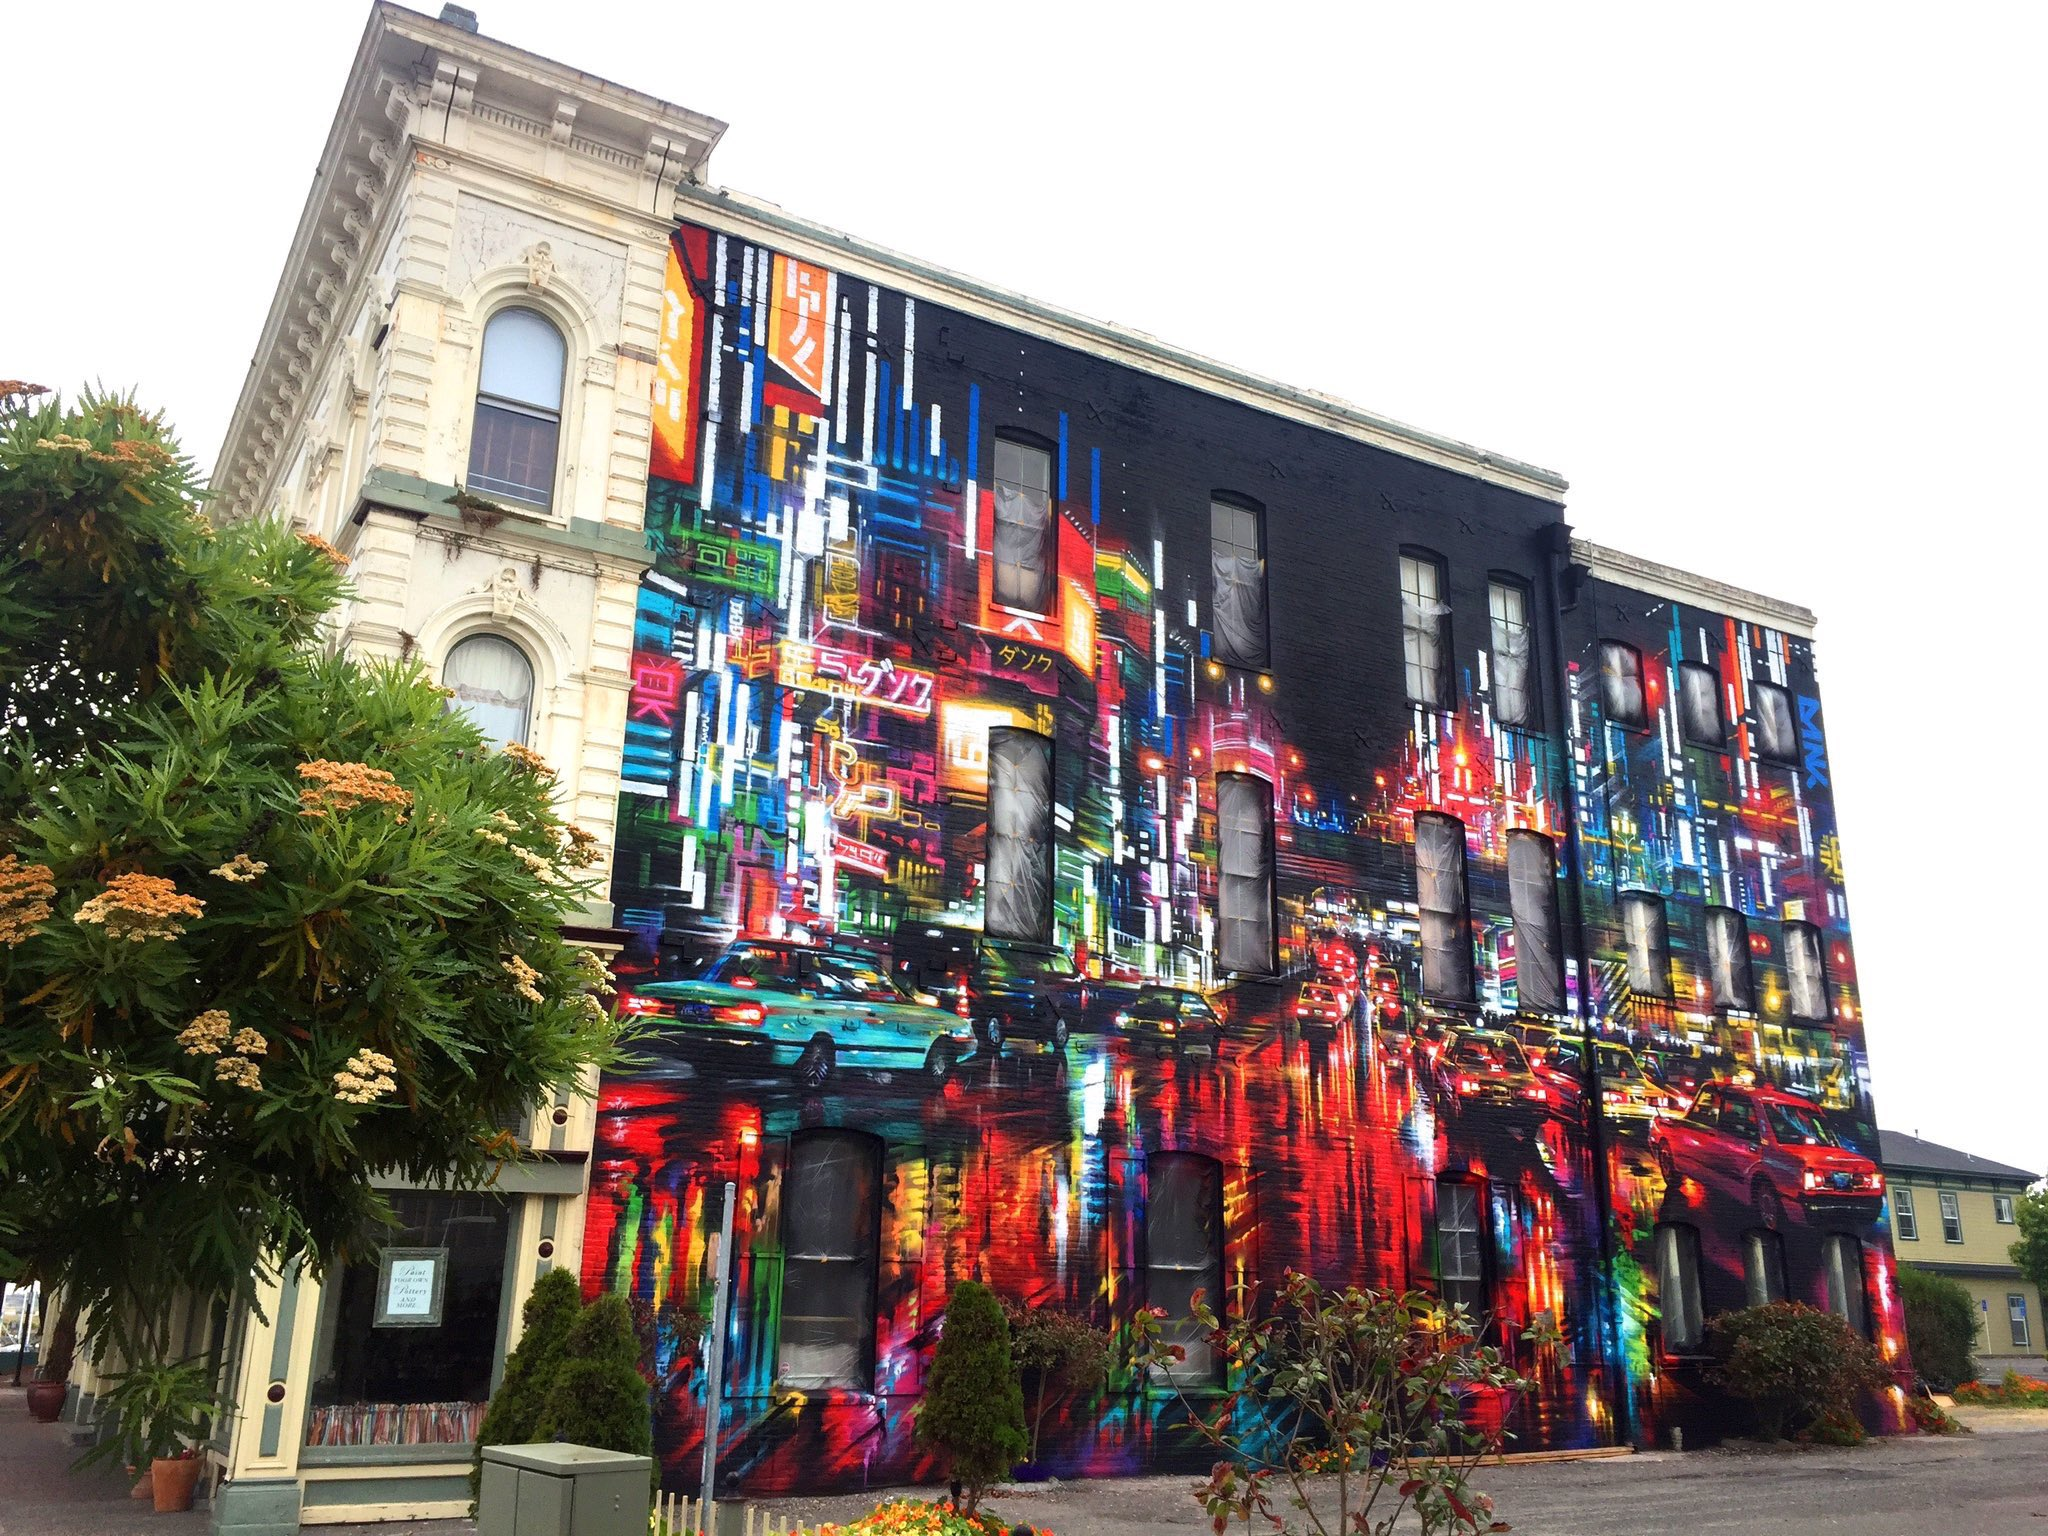 Eureka / California - 50ft x 75ft new Street Art freehand spray paint / solo painted by @DanKitchener https://t.co/eektcMBFD8